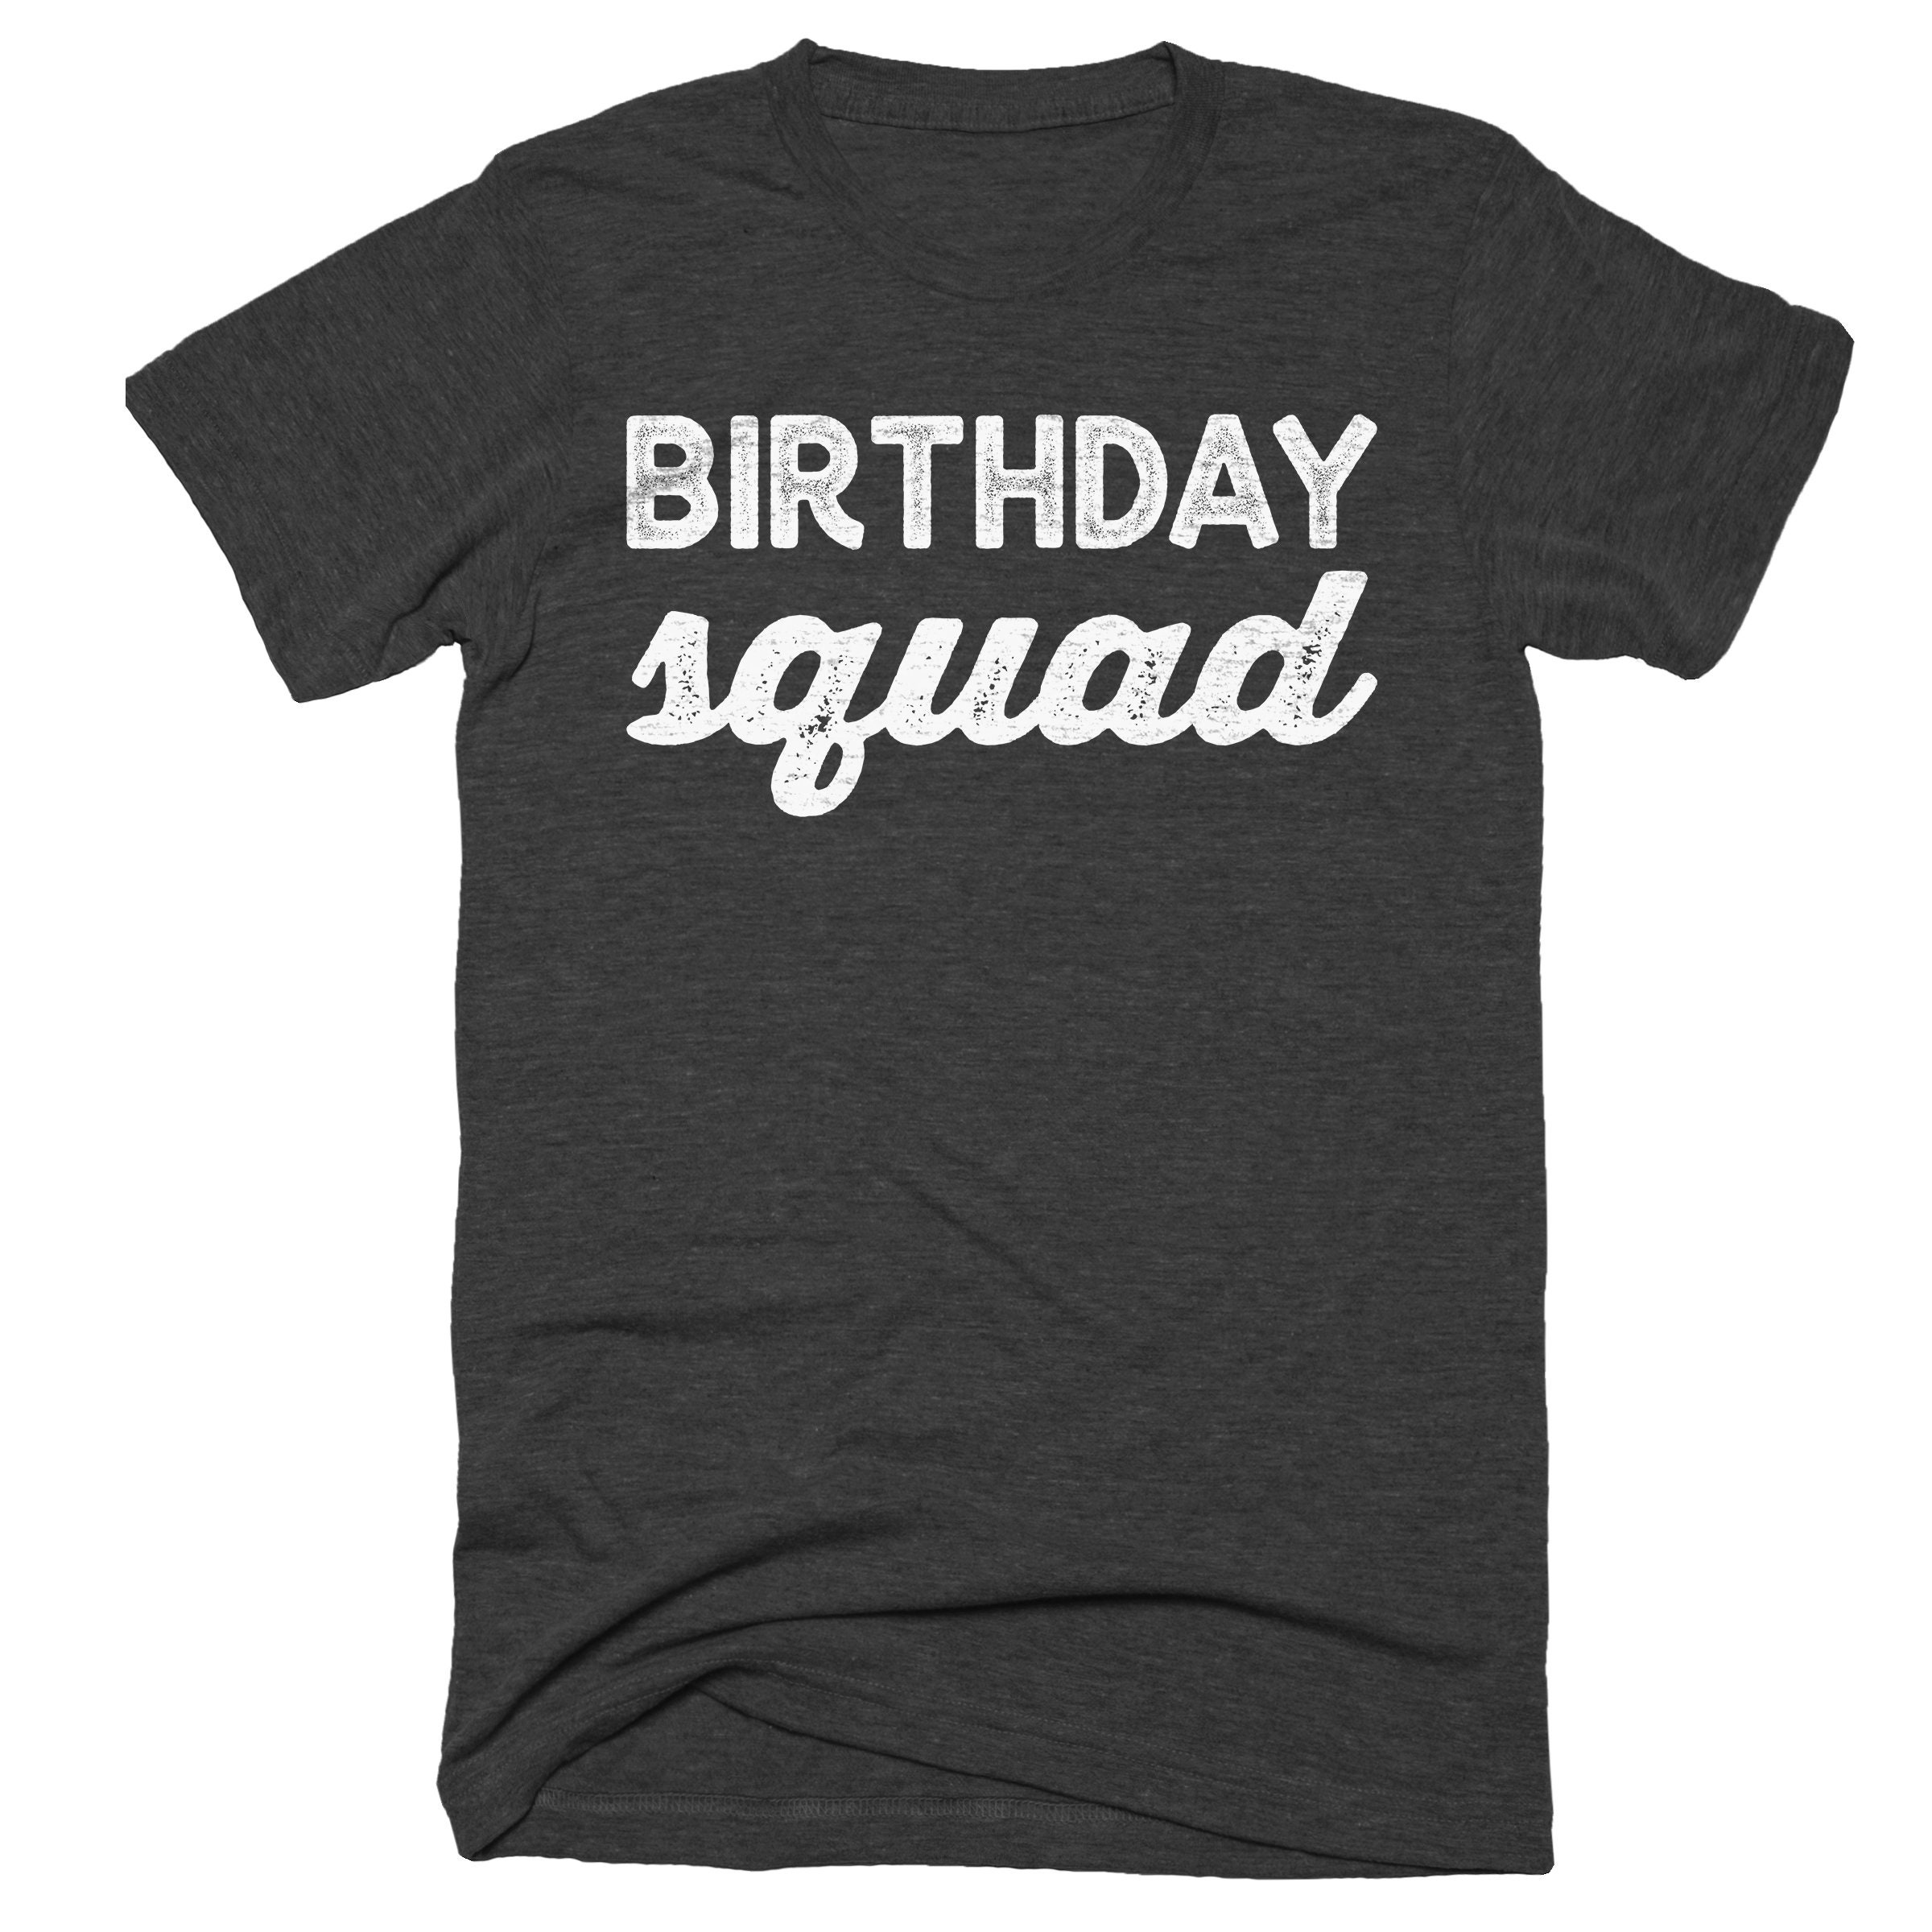 Birthday Squad Shirt Tanks Sweatshirt Group Shirts Bar